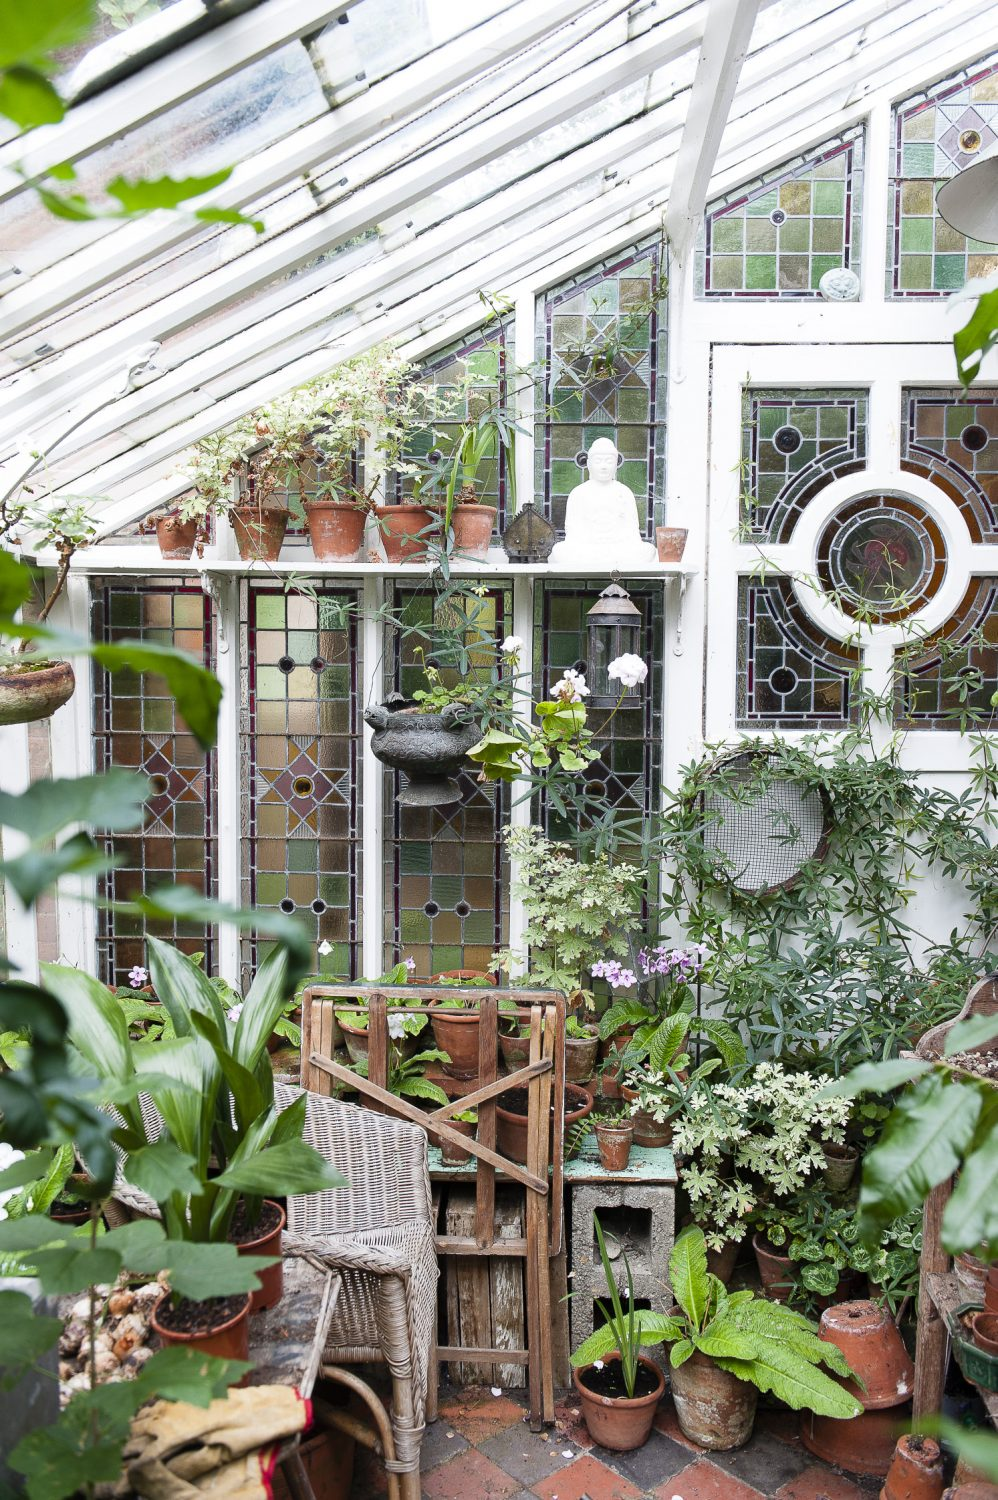 A glasshouse in the garden with stained glass windows